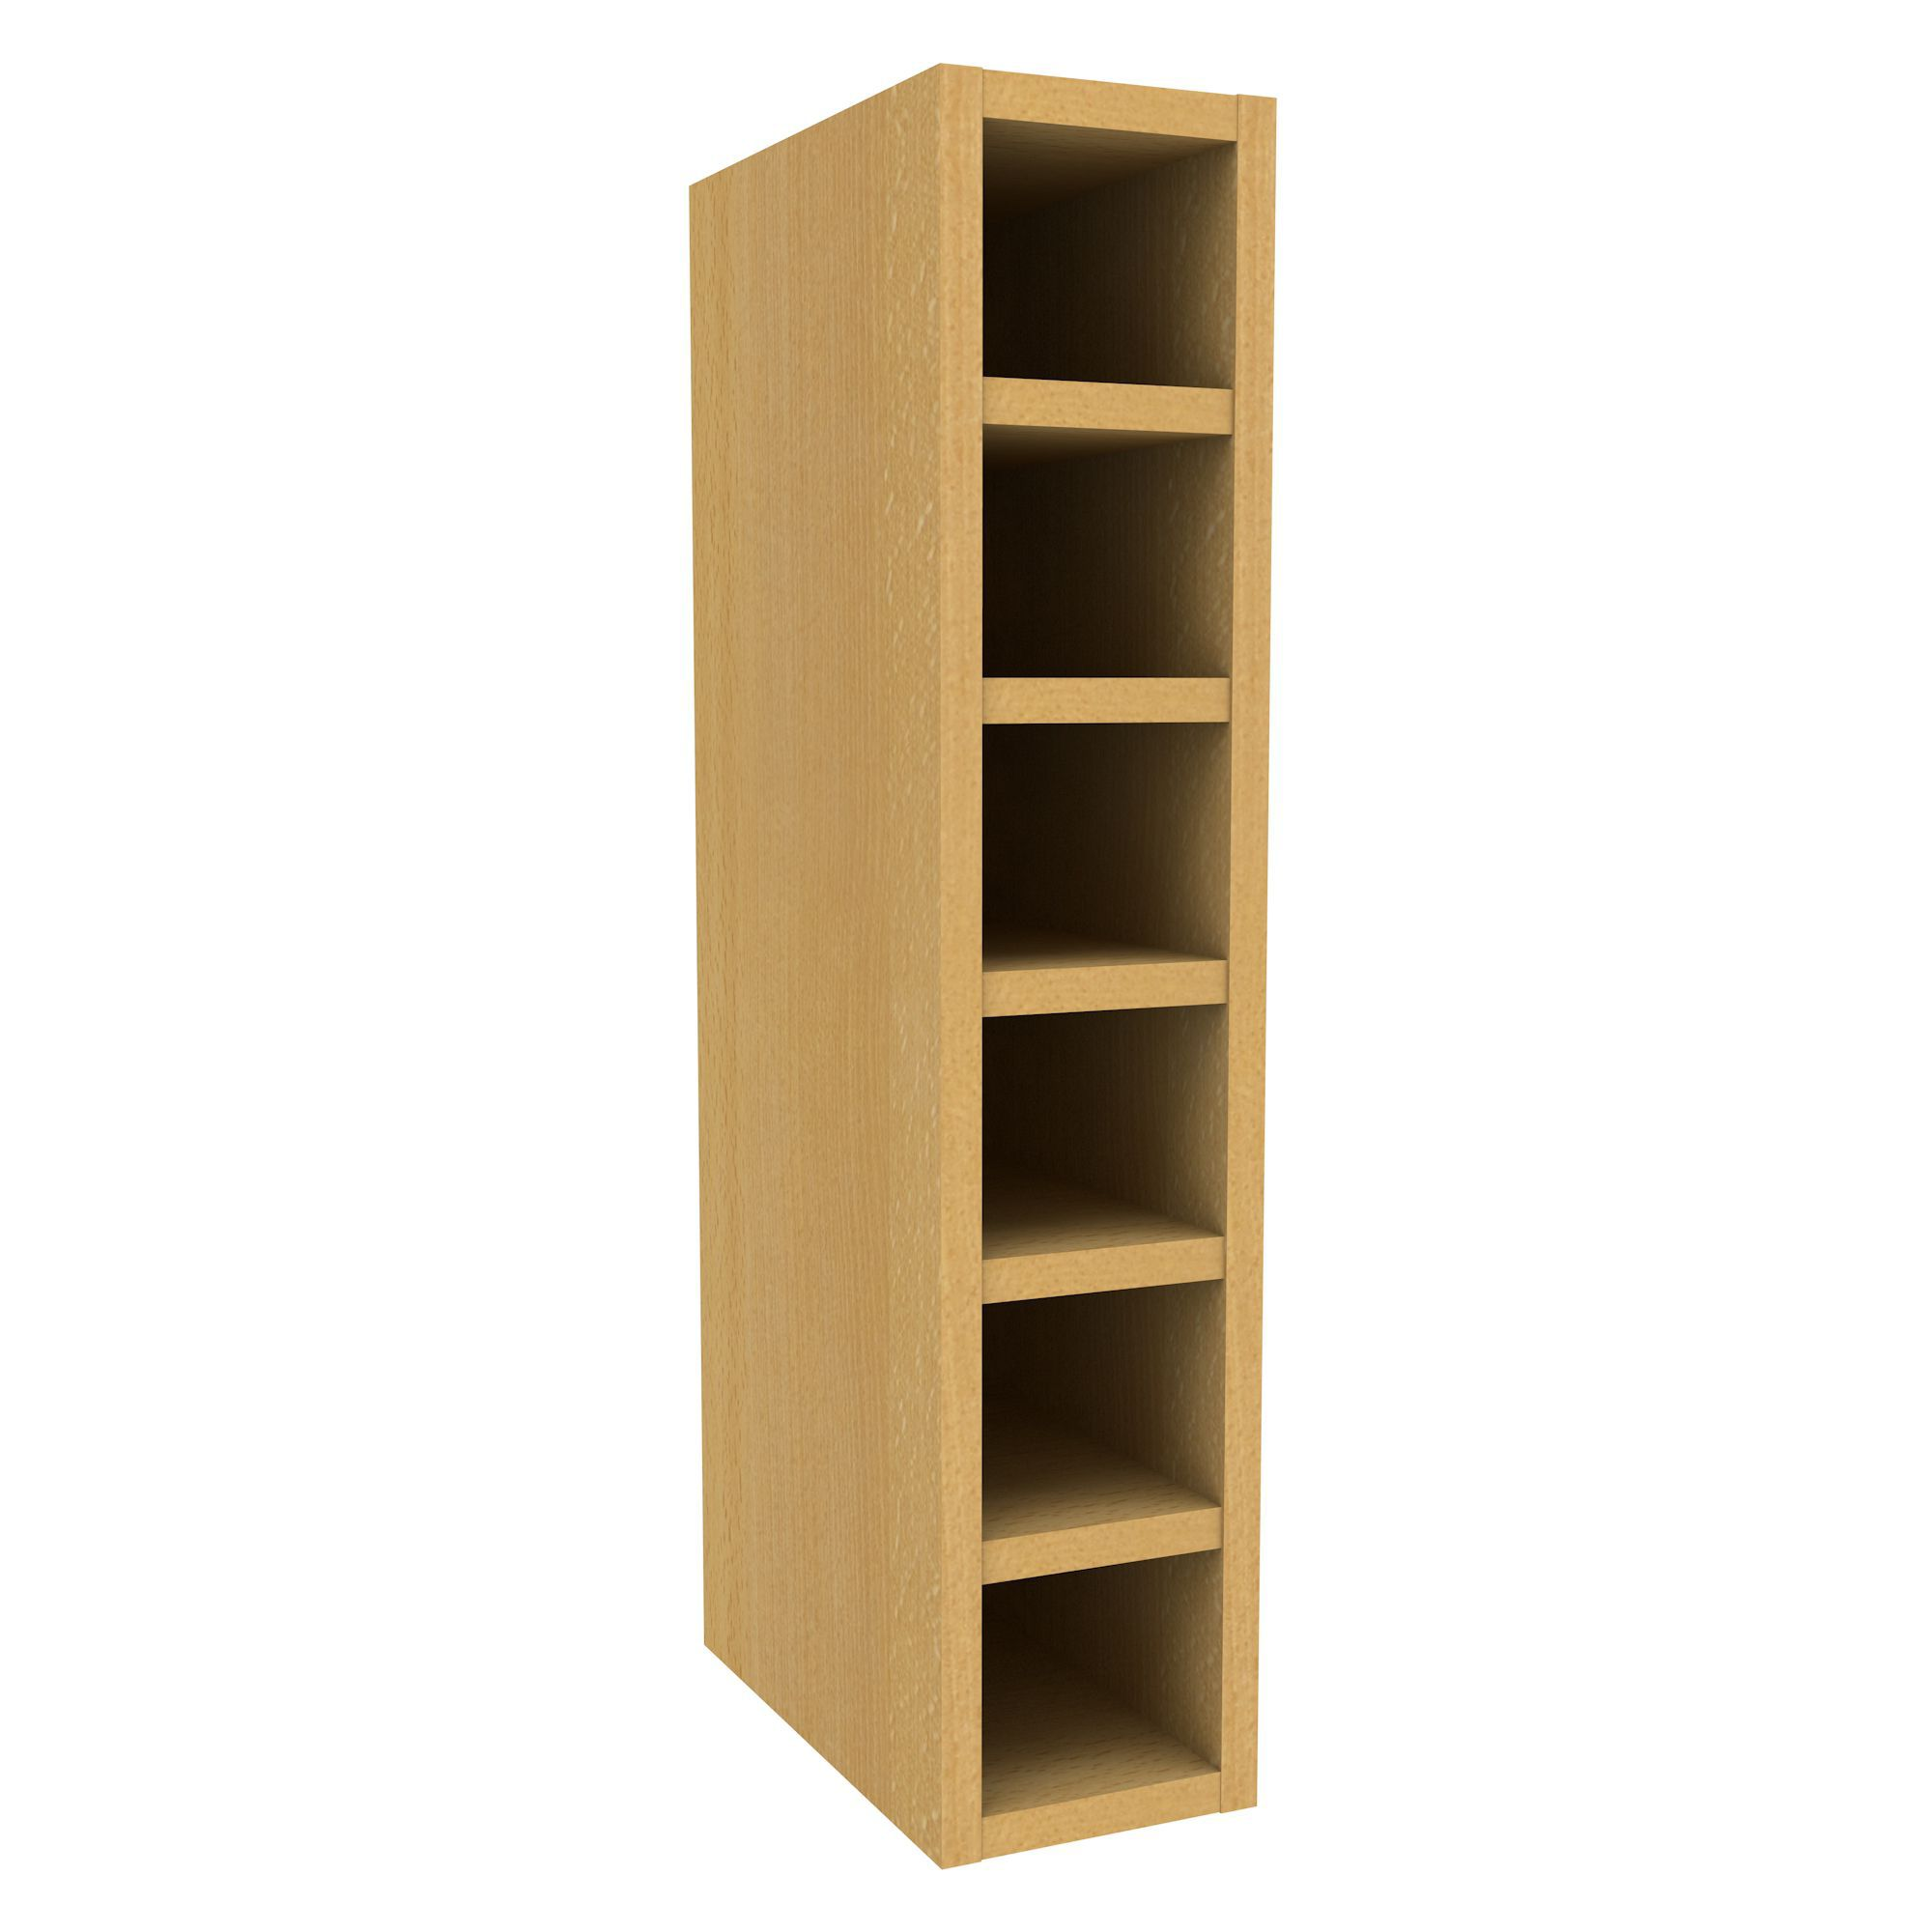 Cooke lewis beech effect wine rack wall cabinet w 150mm for Slim kitchen wall cabinets